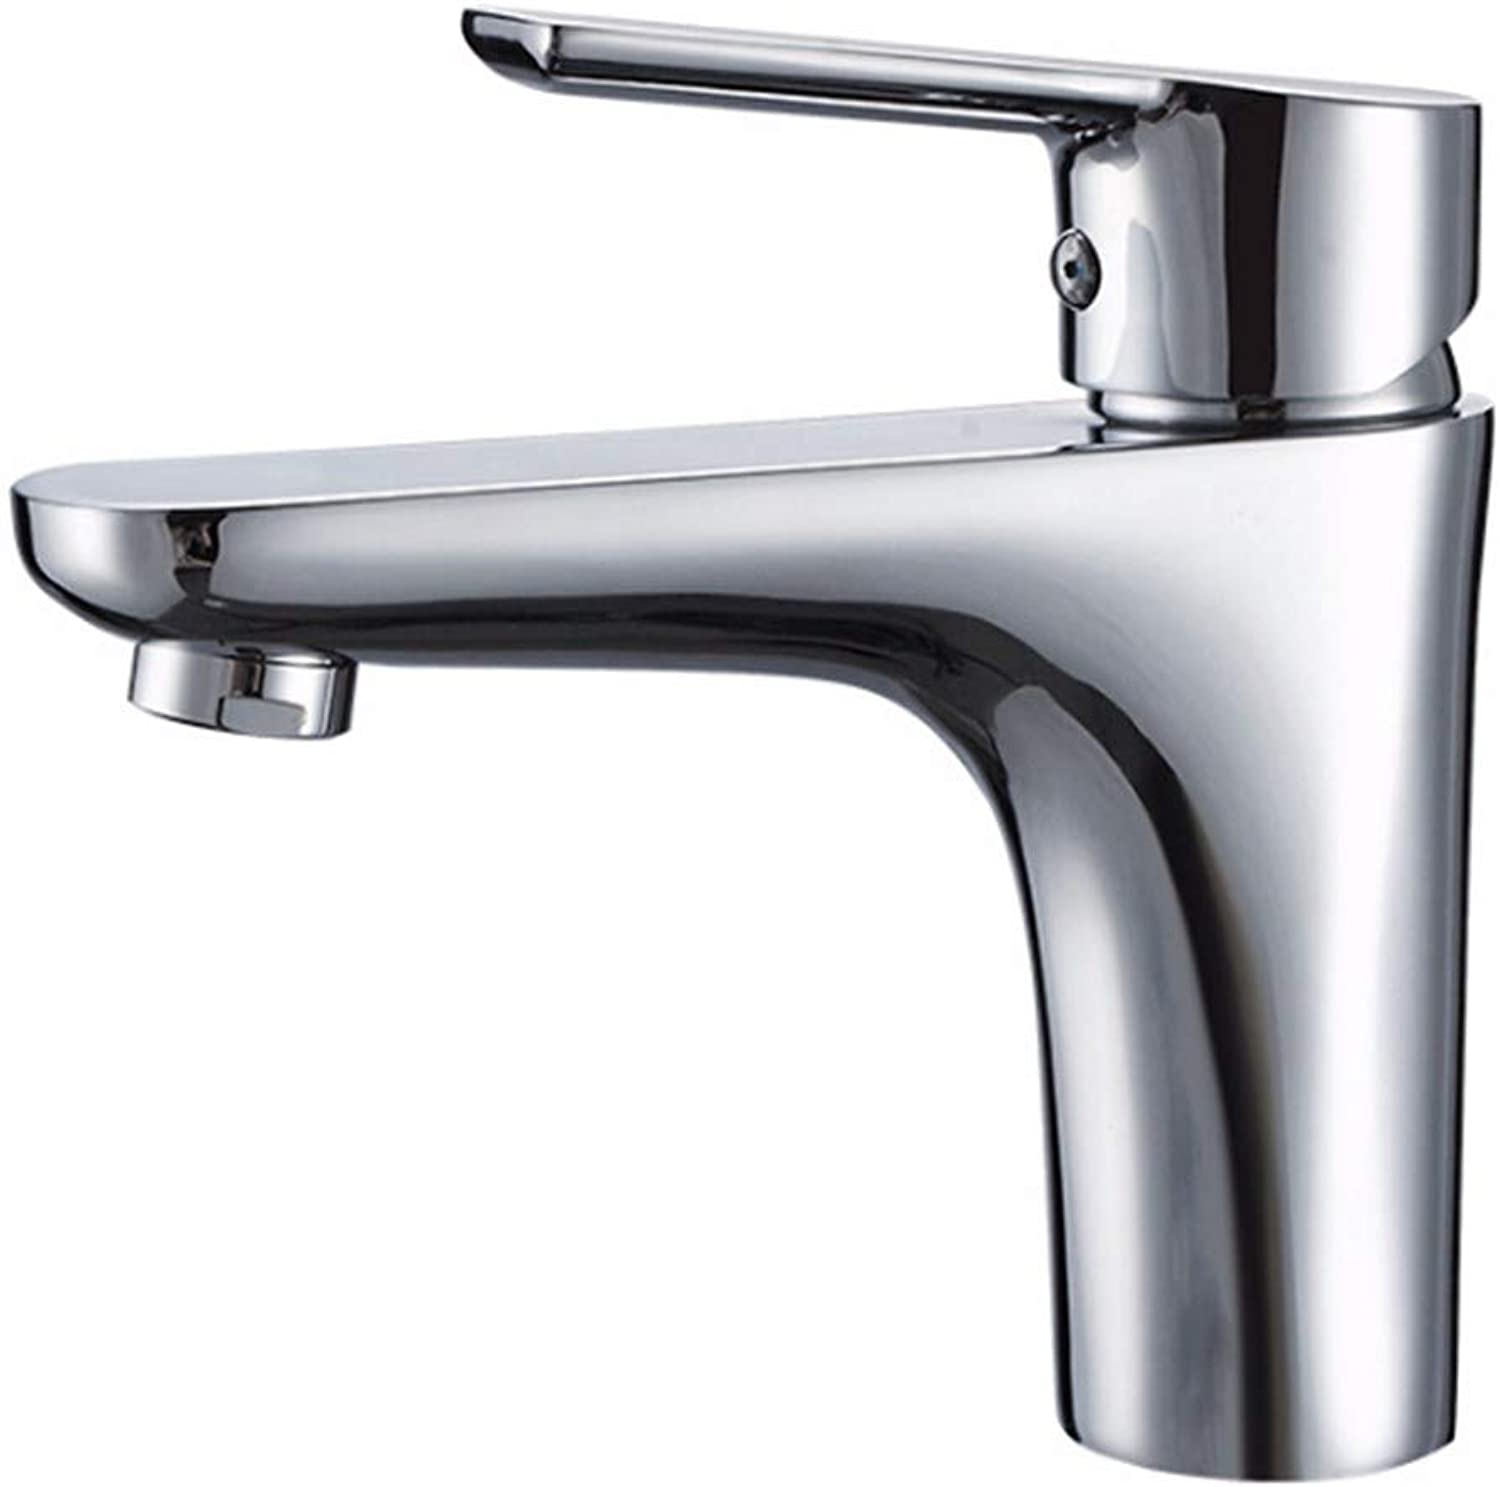 PatTheTap Faucet Retro Copper Silvery Tap for Bathroom Washbasin Sink Hot and Cold Water Mixing